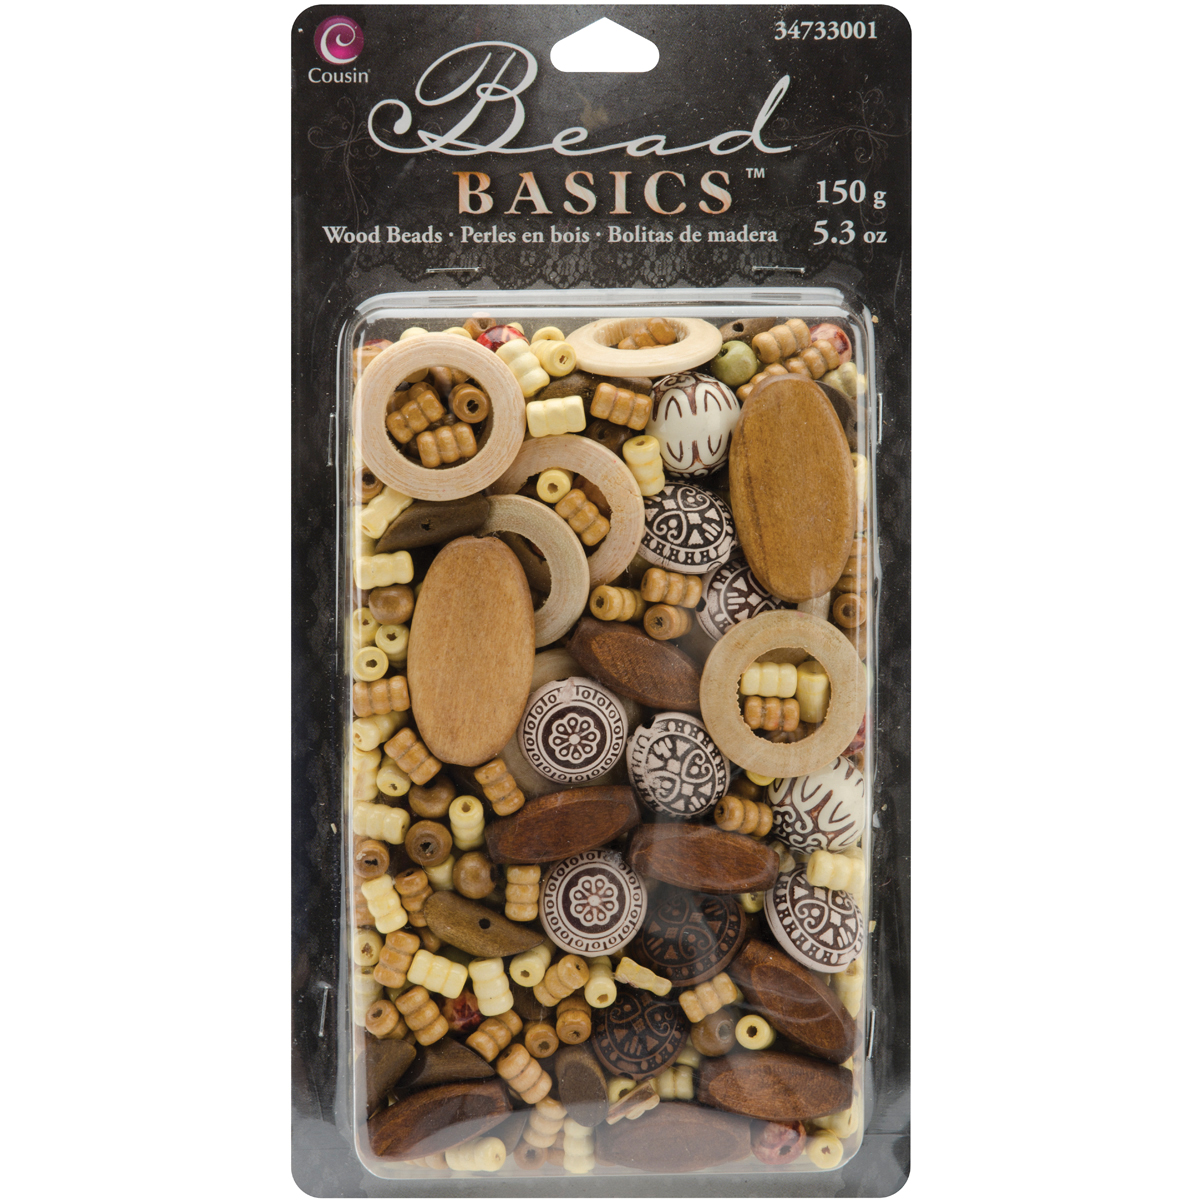 Cousin Jewelry Basics Wood Bead Mix, 150g/pkg